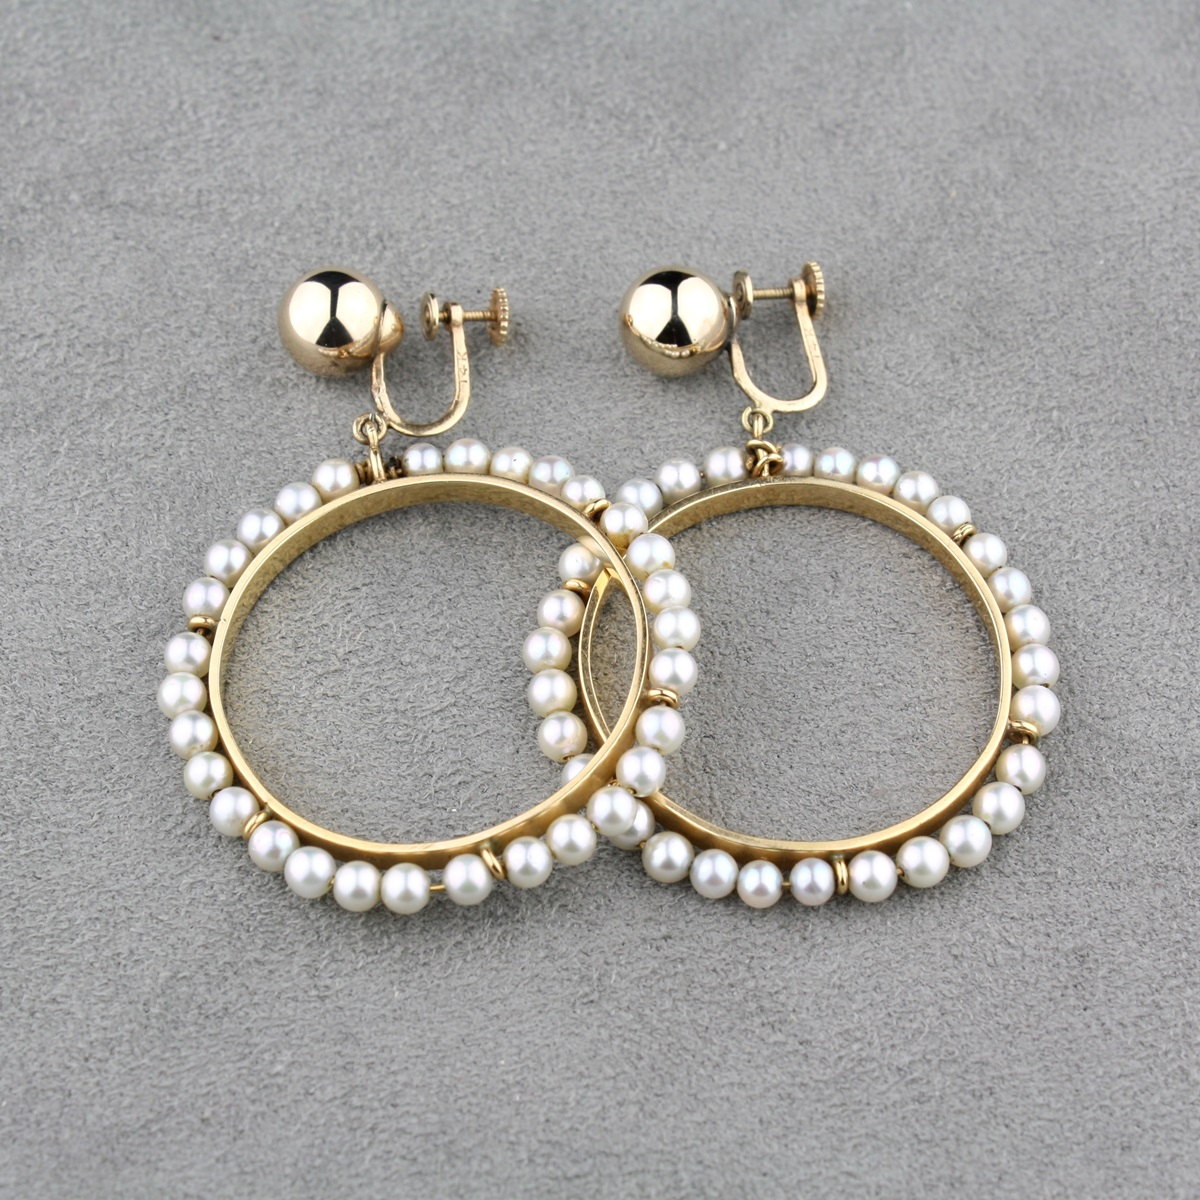 Vintage Akoya Pearl Hoop Earrings